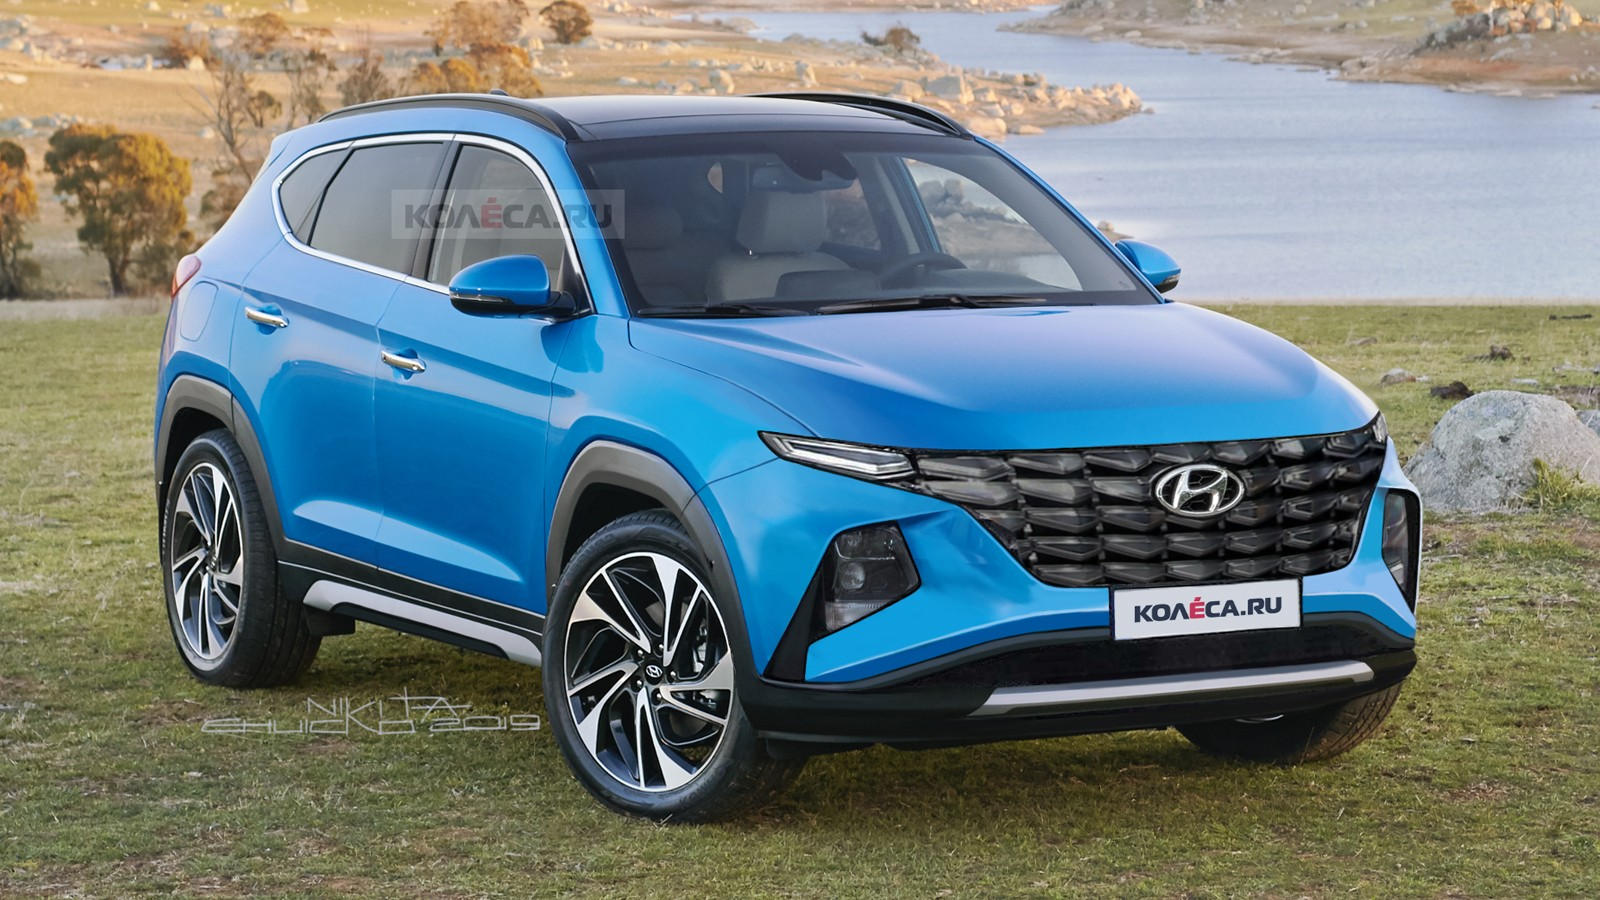 2021 hyundai tucson will look radically different  carbuzz